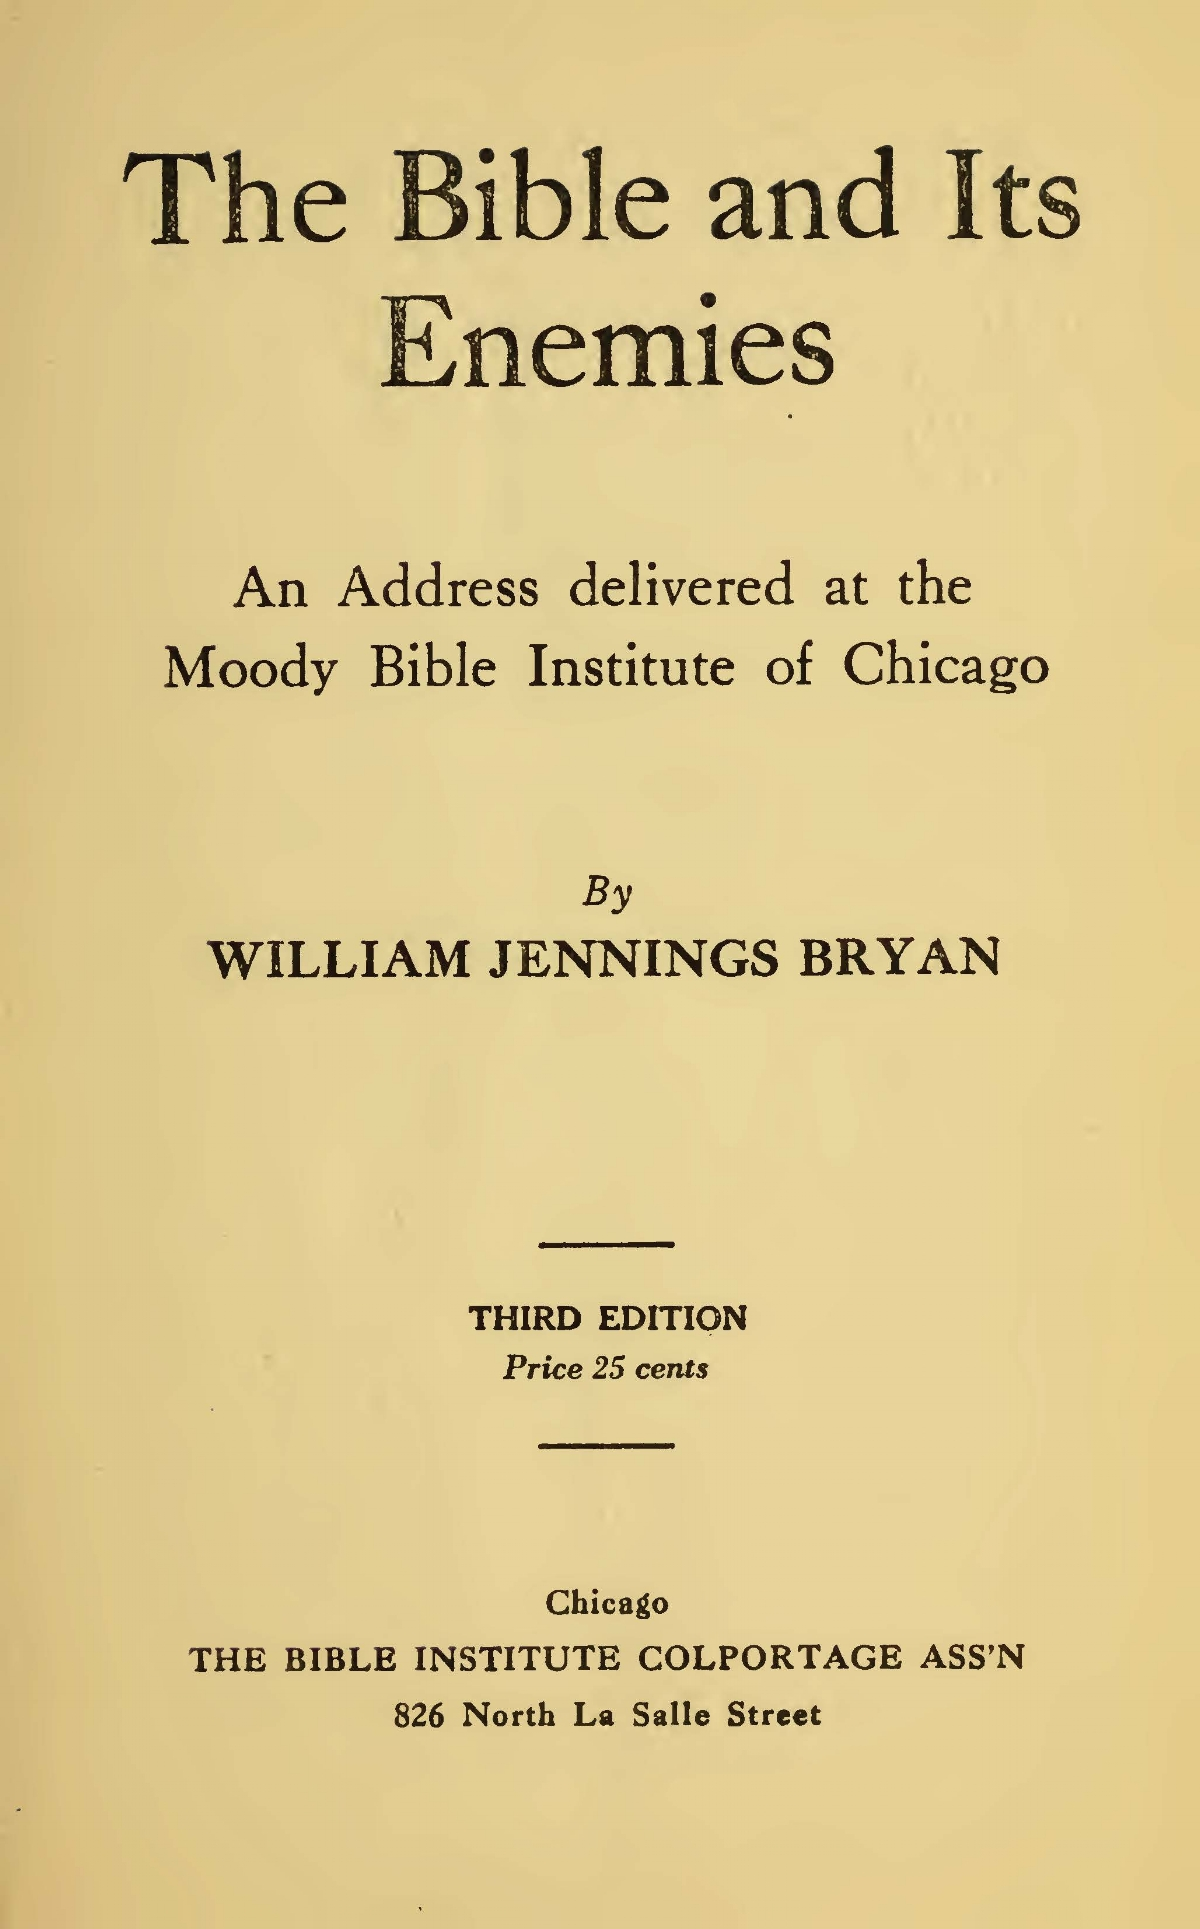 Bryan, Sr., William Jennings, The Bible and Its Enemies Title Page.jpg